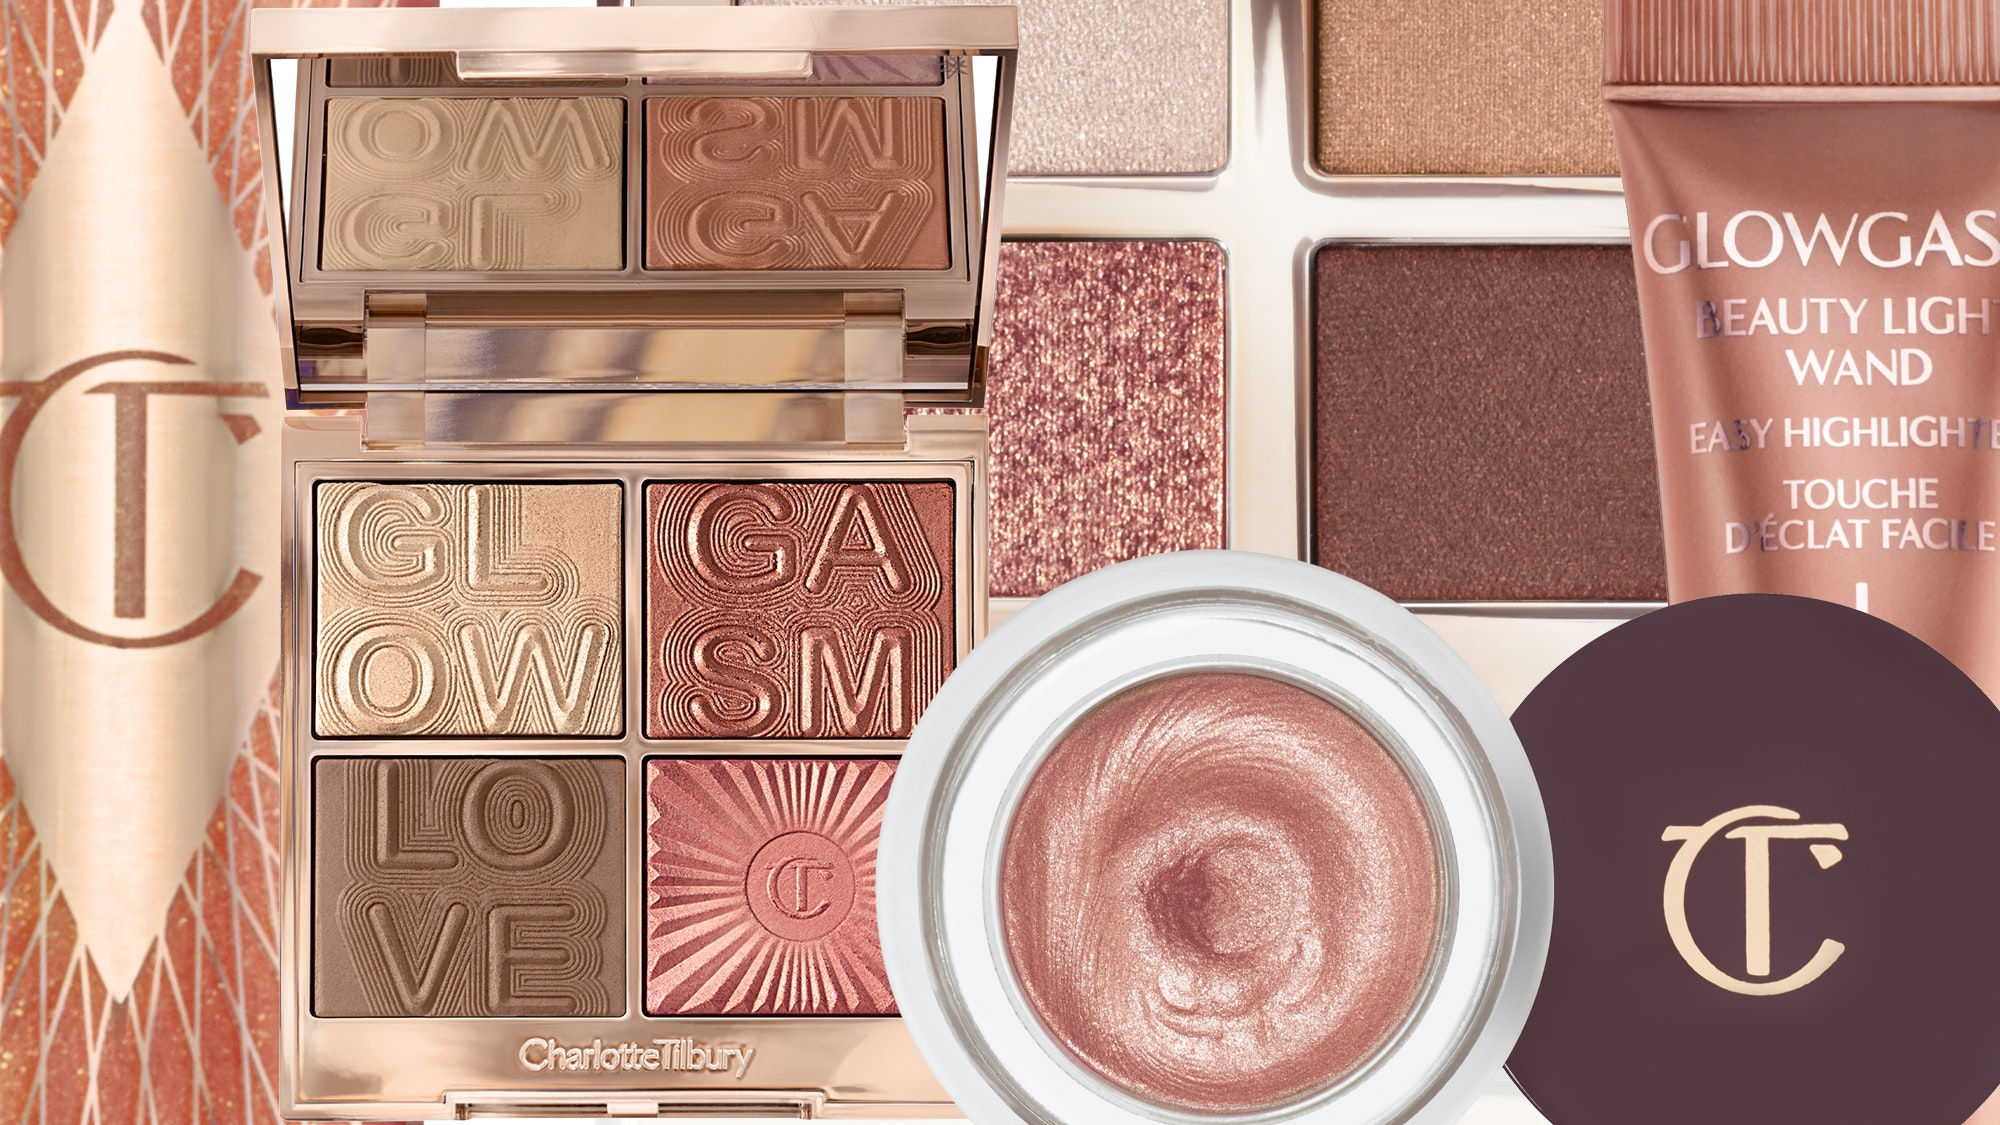 Charlotte Tilbury's New Glowgasm Collection Will Give Your Skin a Flattering, Ethereal Radiance